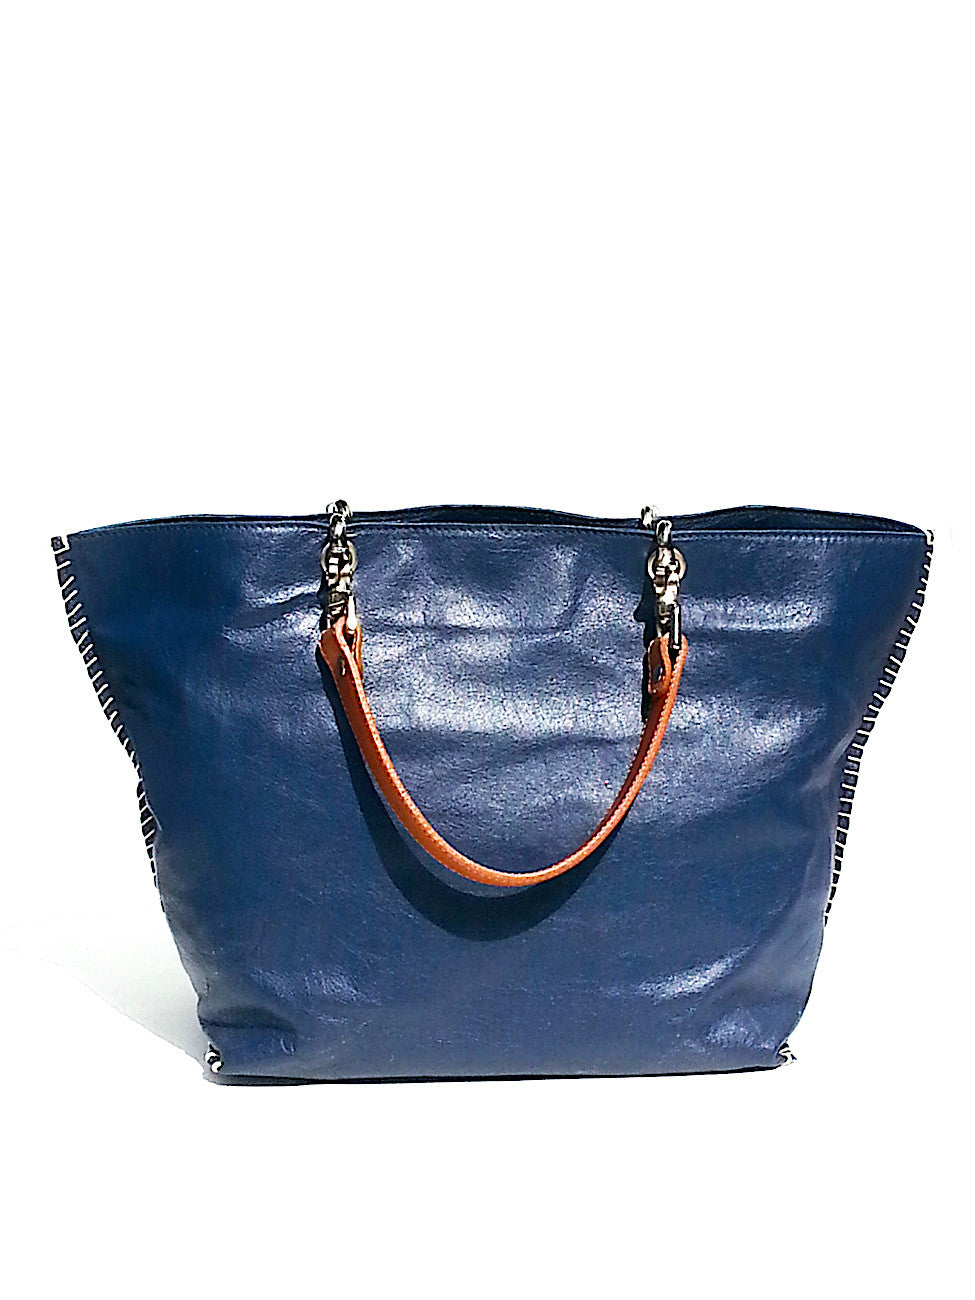 Gamidi 2 Tote Napa Leather Navy